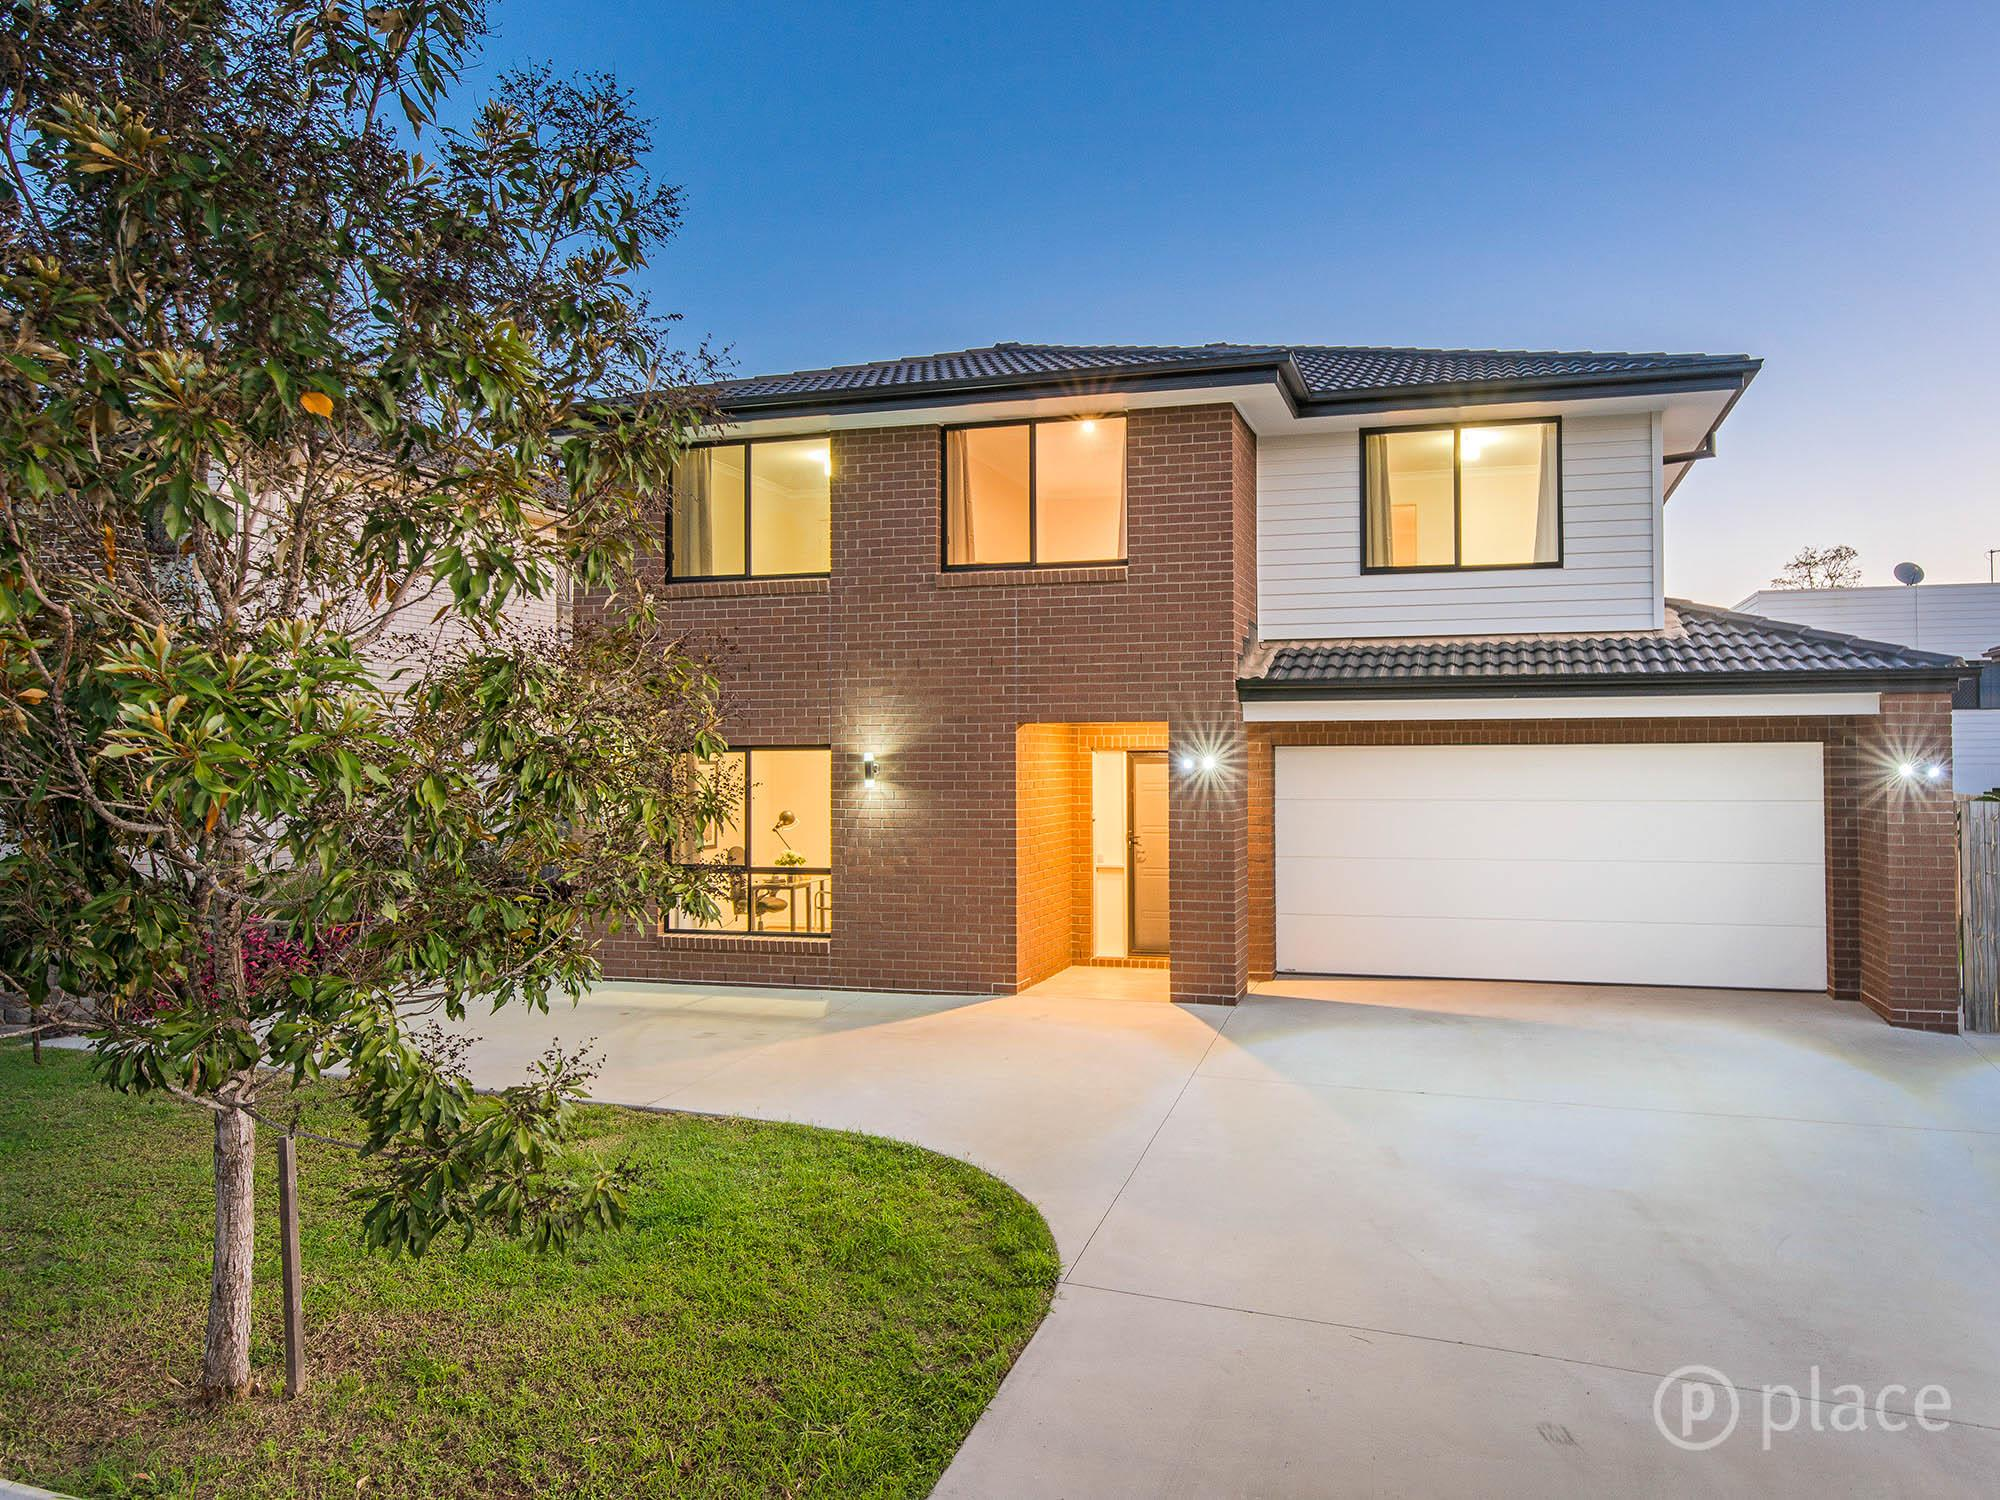 Property For Sale In Calamvale